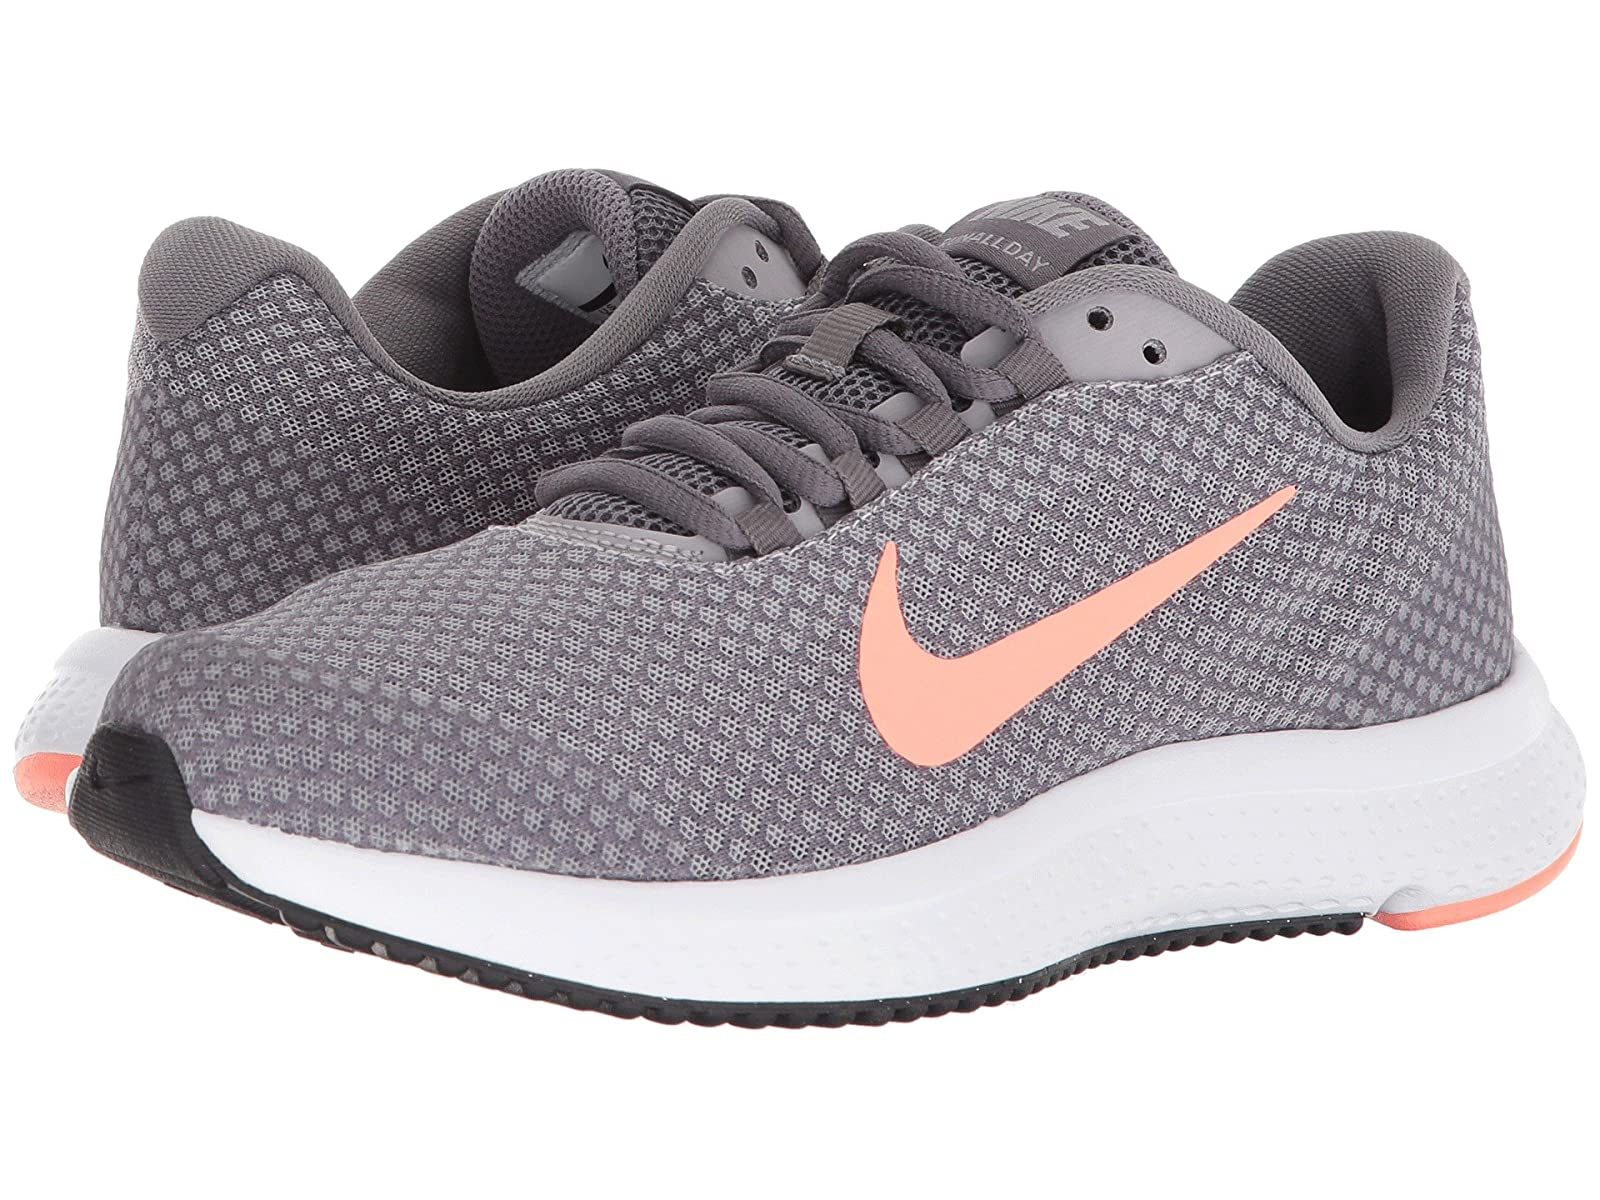 Nike RunAllDayAtmospheric grades have affordable shoes